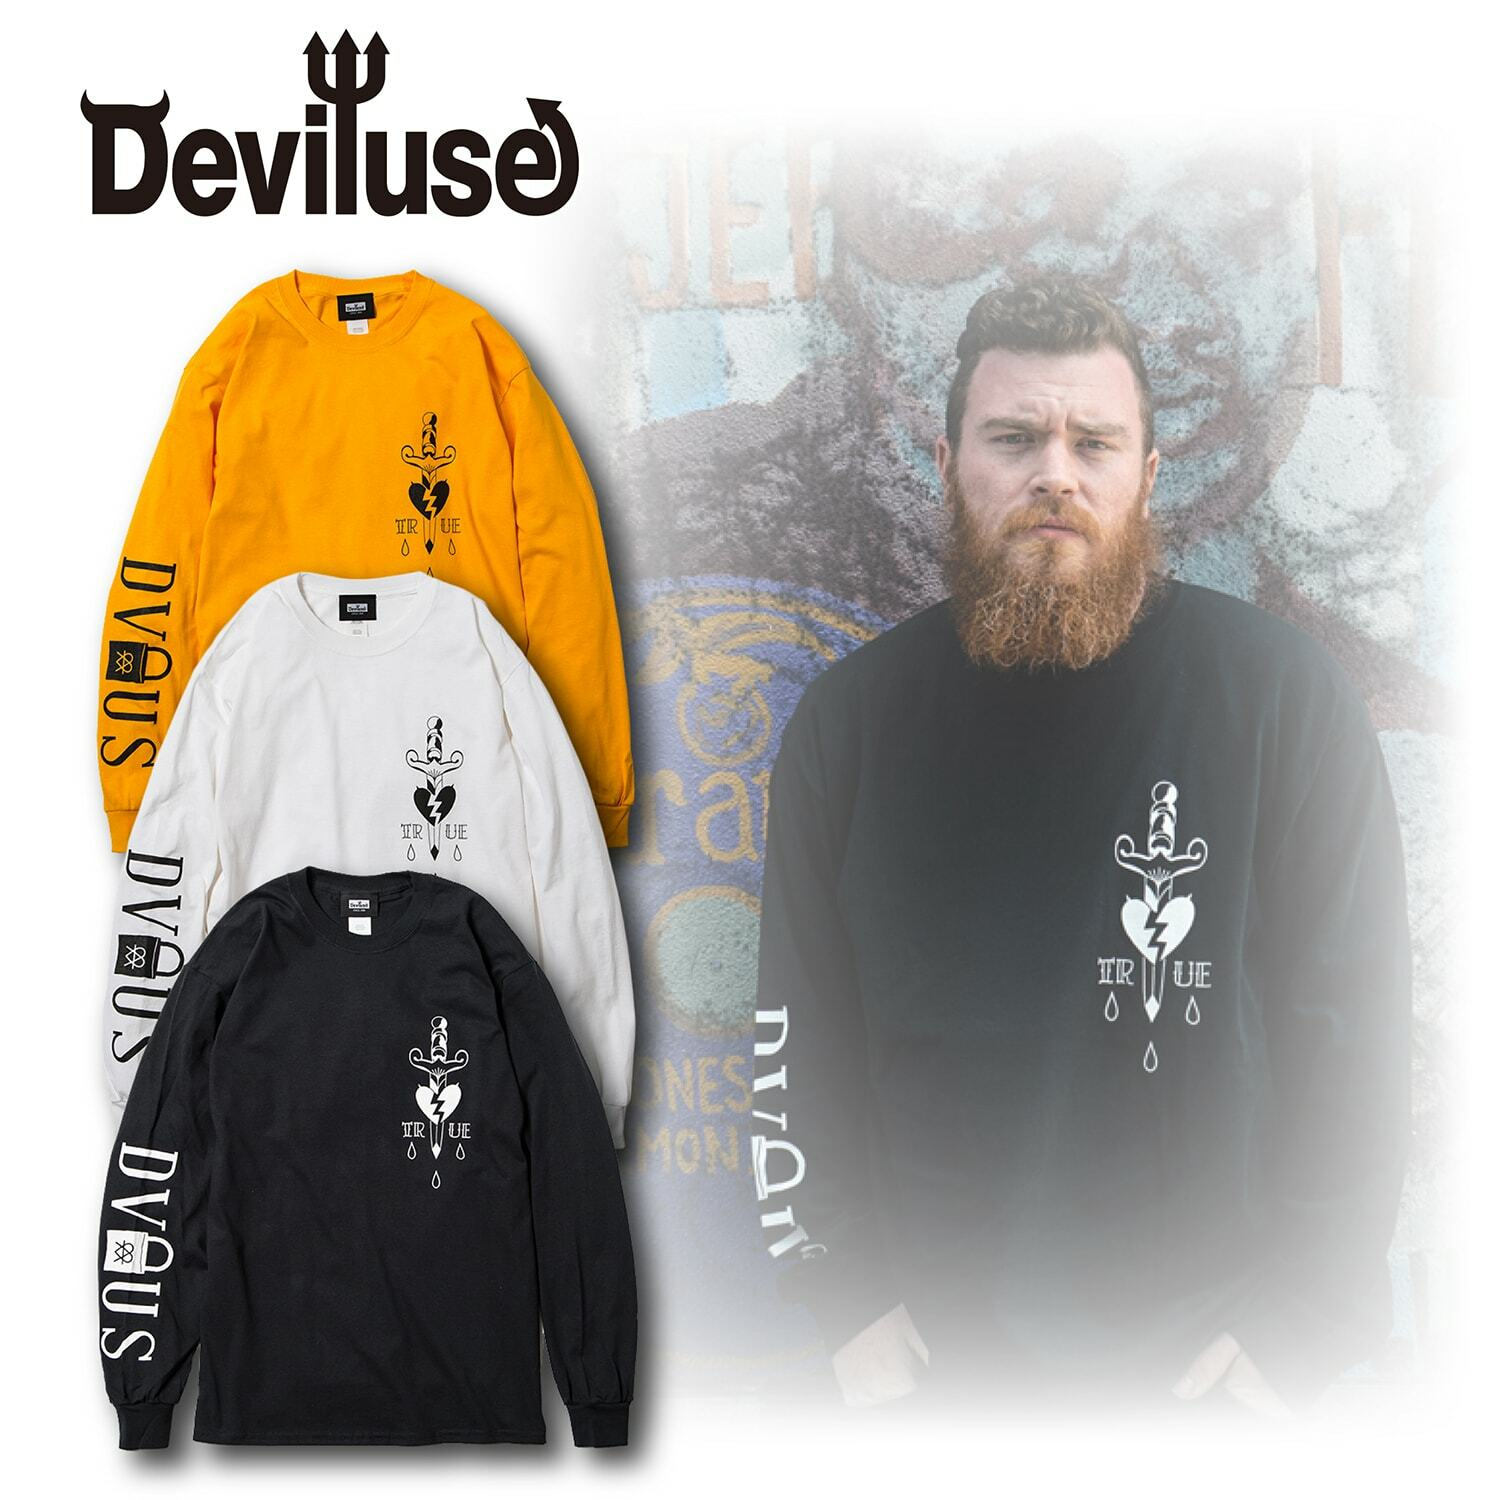 Deviluse(デビルユース) | TRUE L/S T-shirts